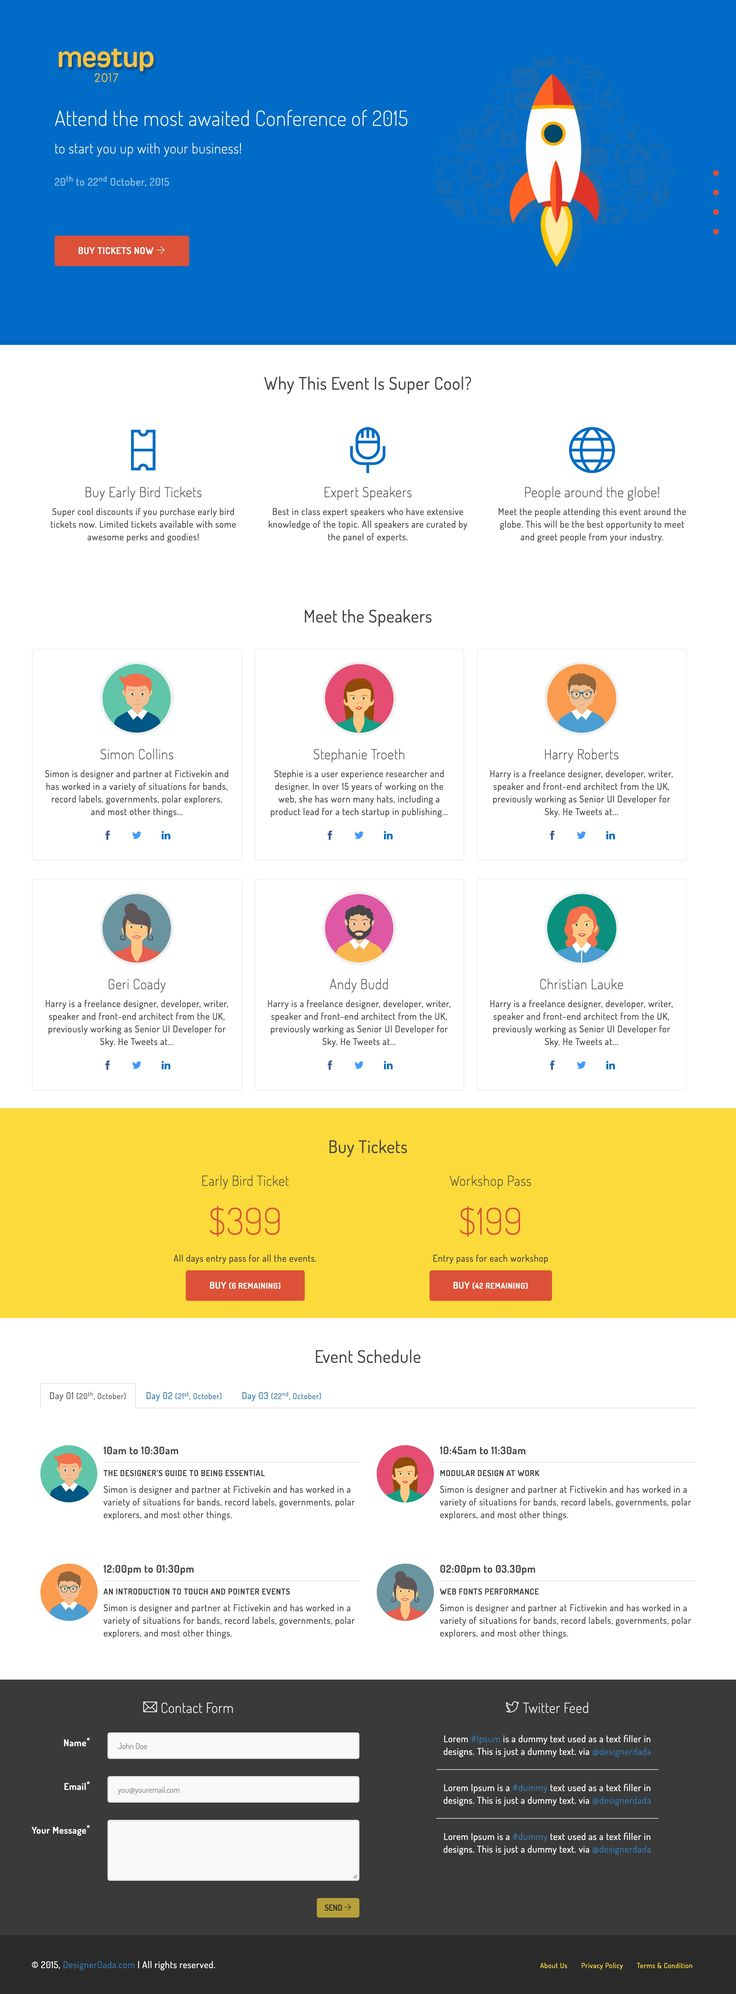 'Meetup' is a FREE One Page HTML template suited for promoting an event. Sections include intro overview, speakers, multi-price ticket options, event schedule (with day switcher), a contact form and a Twitter feed. You'd have to integrate those Buy buttons into something like PayPal, Gumroad or Shopify. Overall the design is fairly basic - I actually quite like speaker section - but a great starting point to announcing your event on low budget.